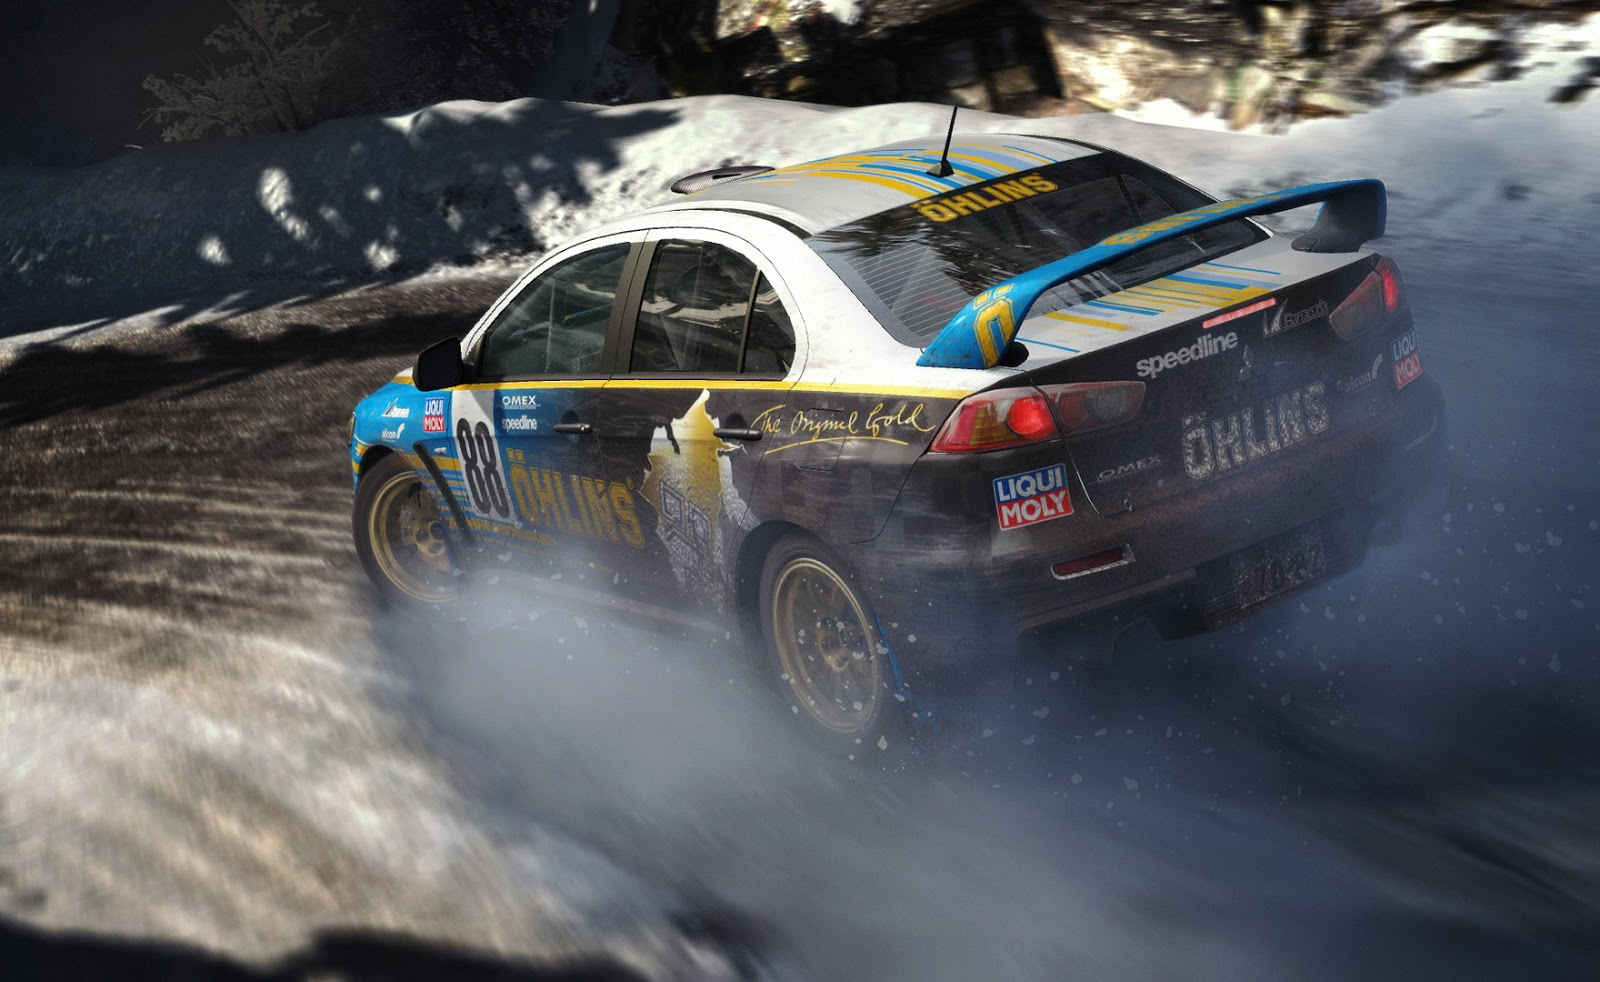 DiRT Rally ESPAÑOL PC Descargar Full (PROPHET) + REPACK 4 DVD5 (JPW) 1